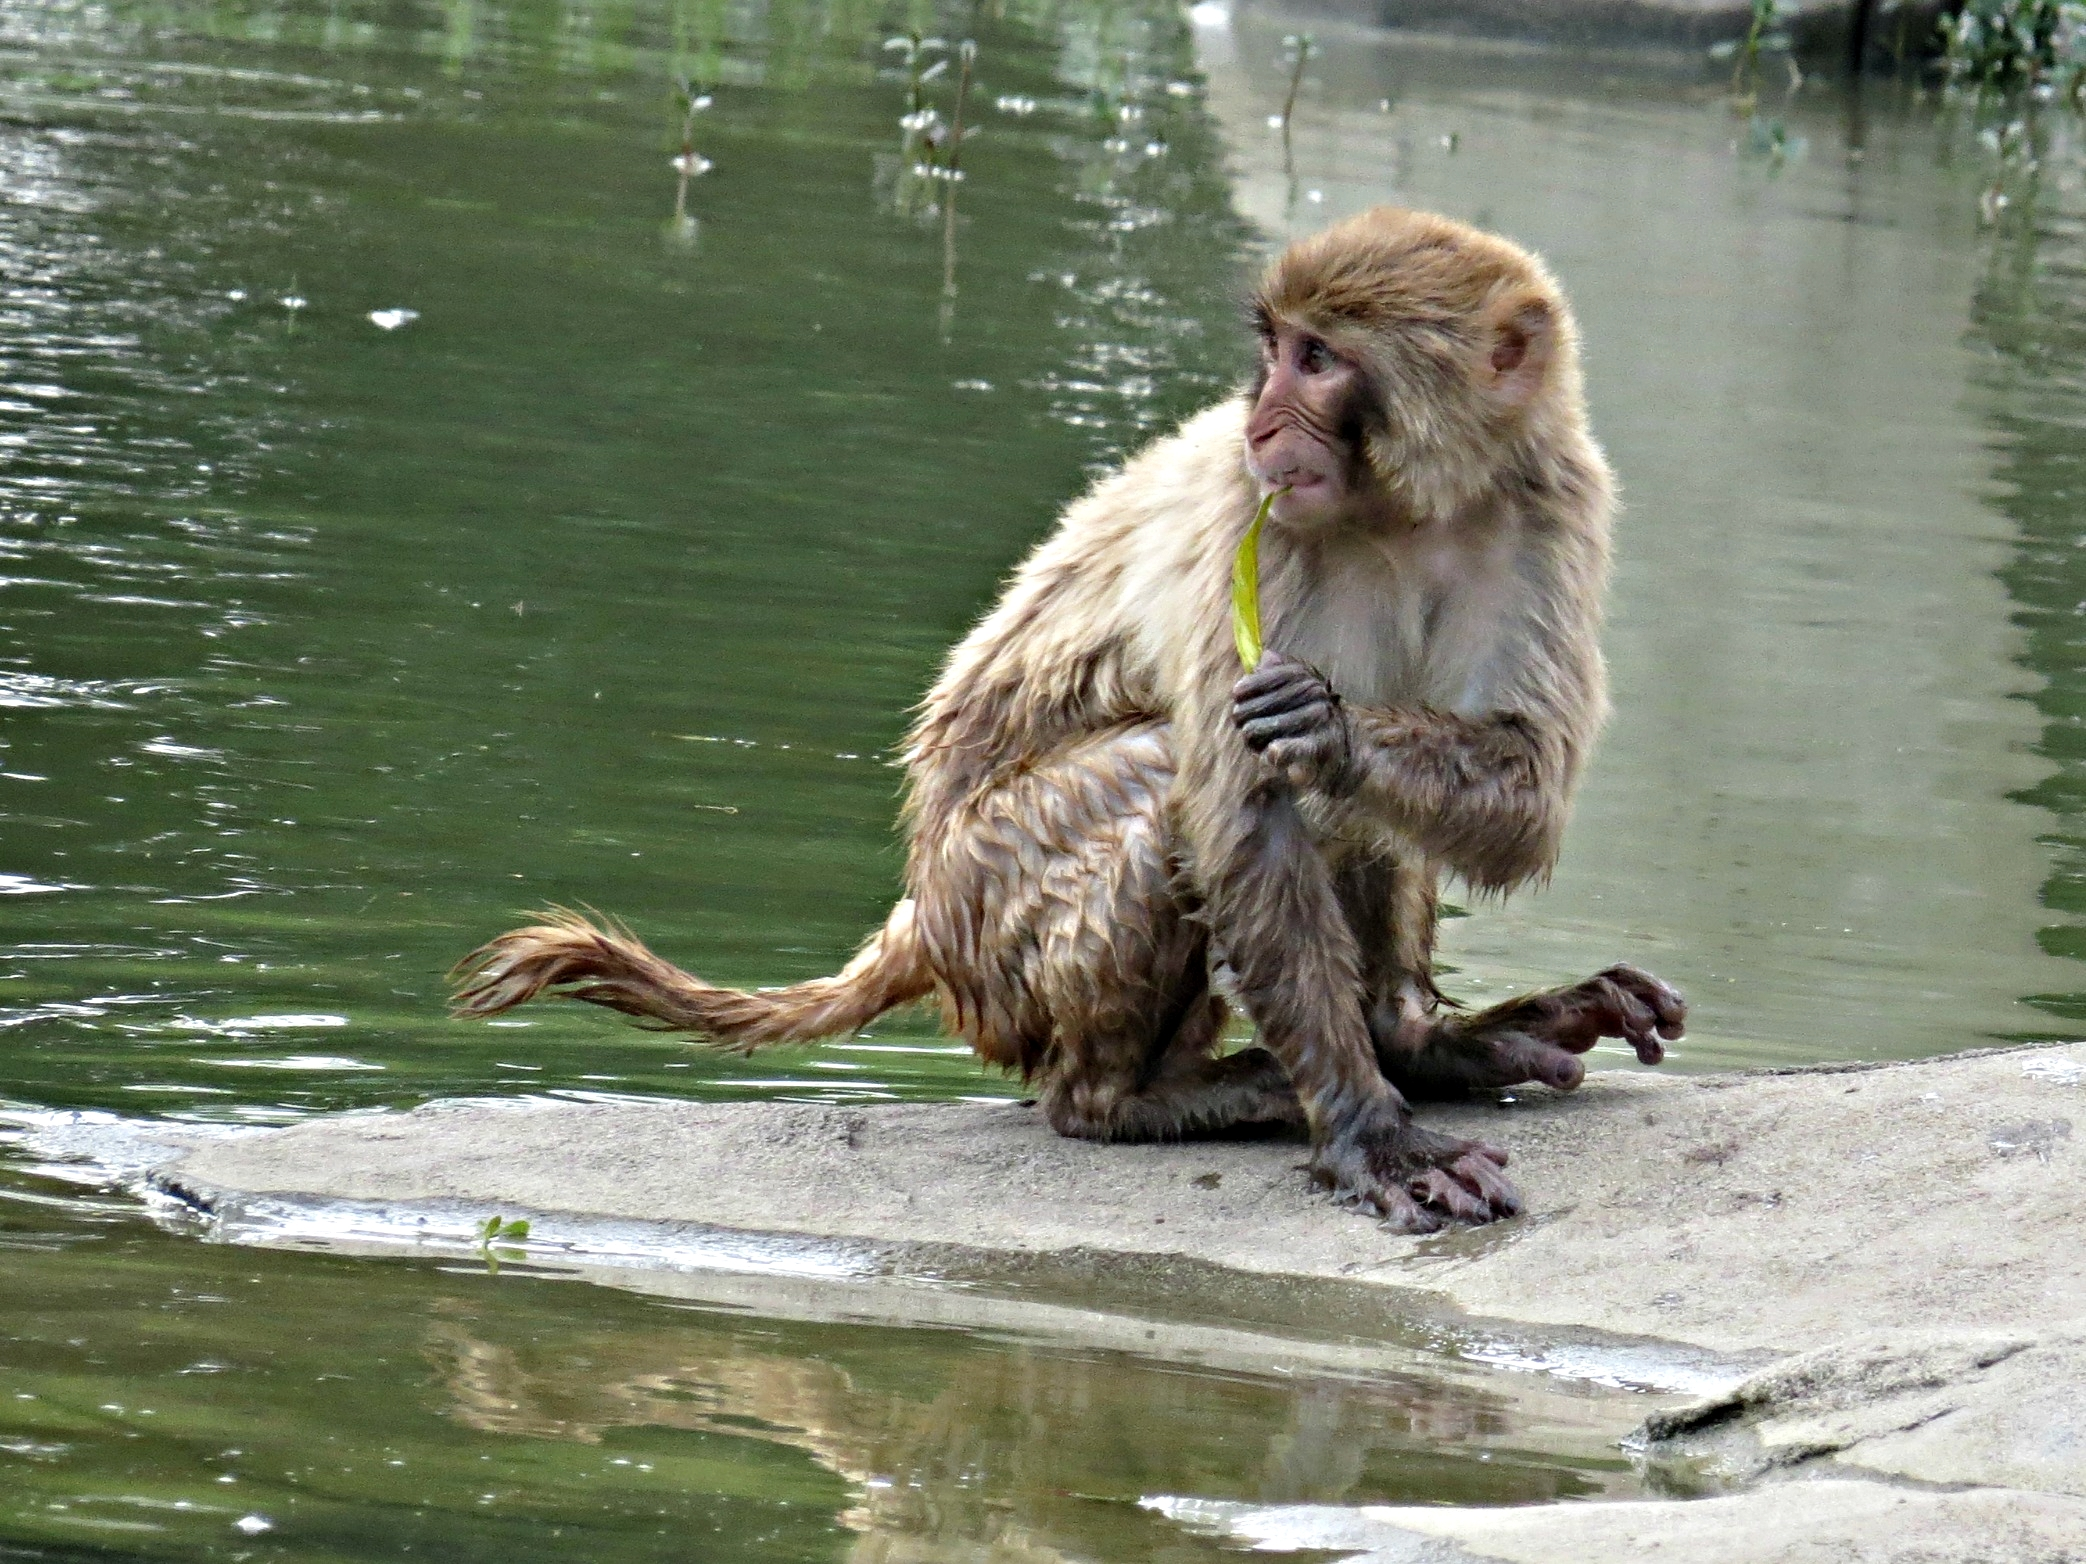 A macaque watching some workers who were on his island area